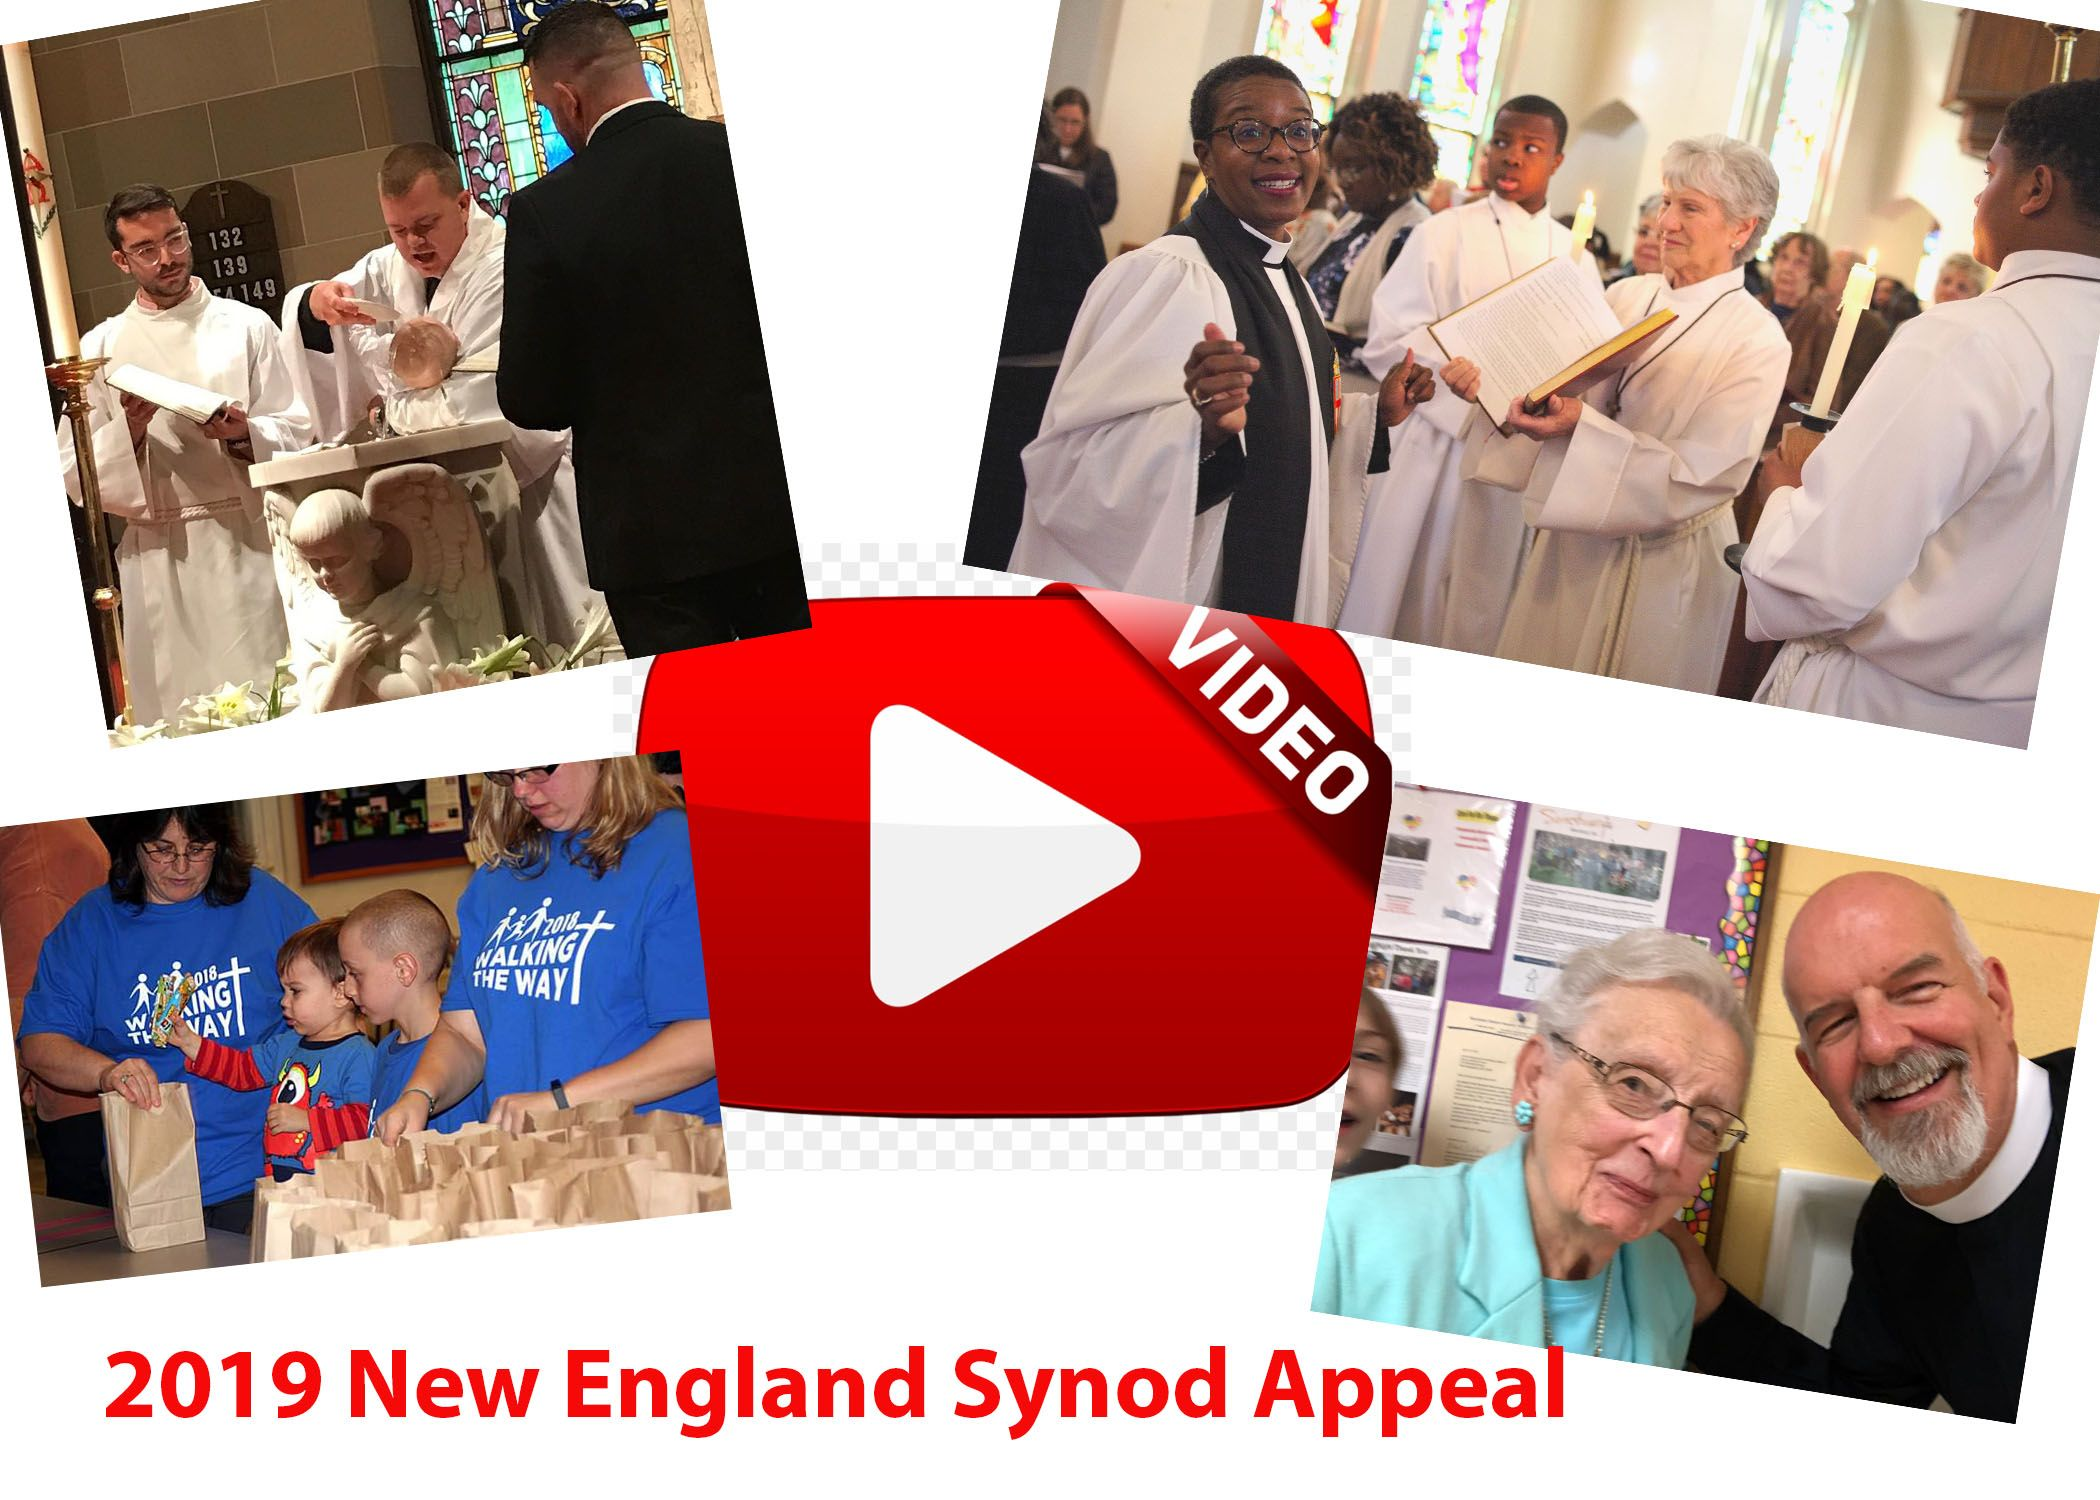 2019 New England Synod Appeal